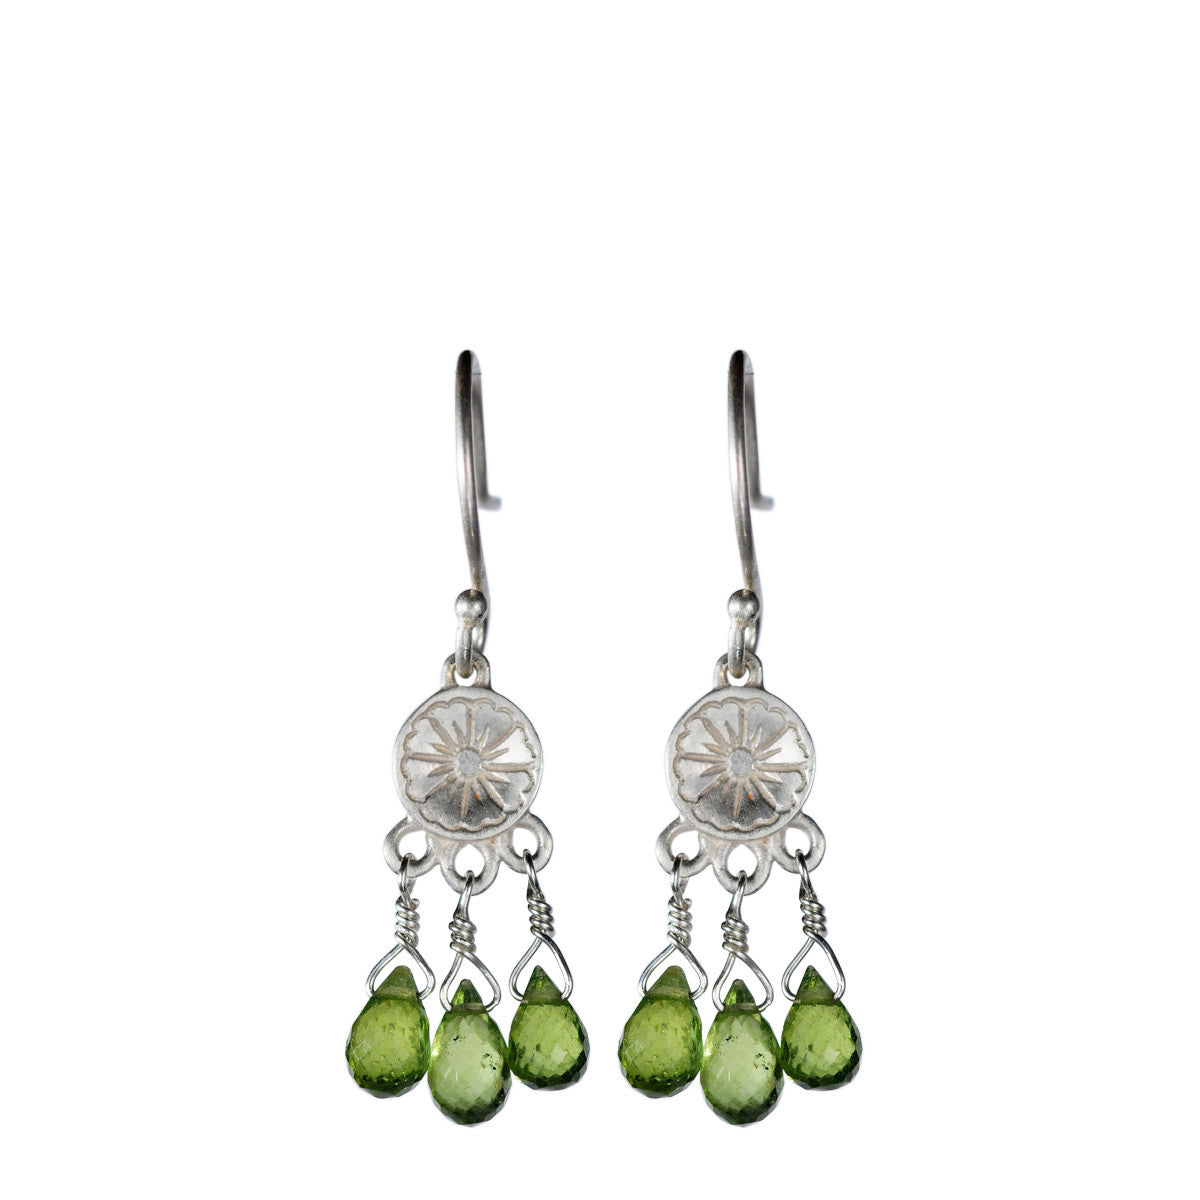 Sterling Silver Small Engraved Earring with Vesuvianite Beads